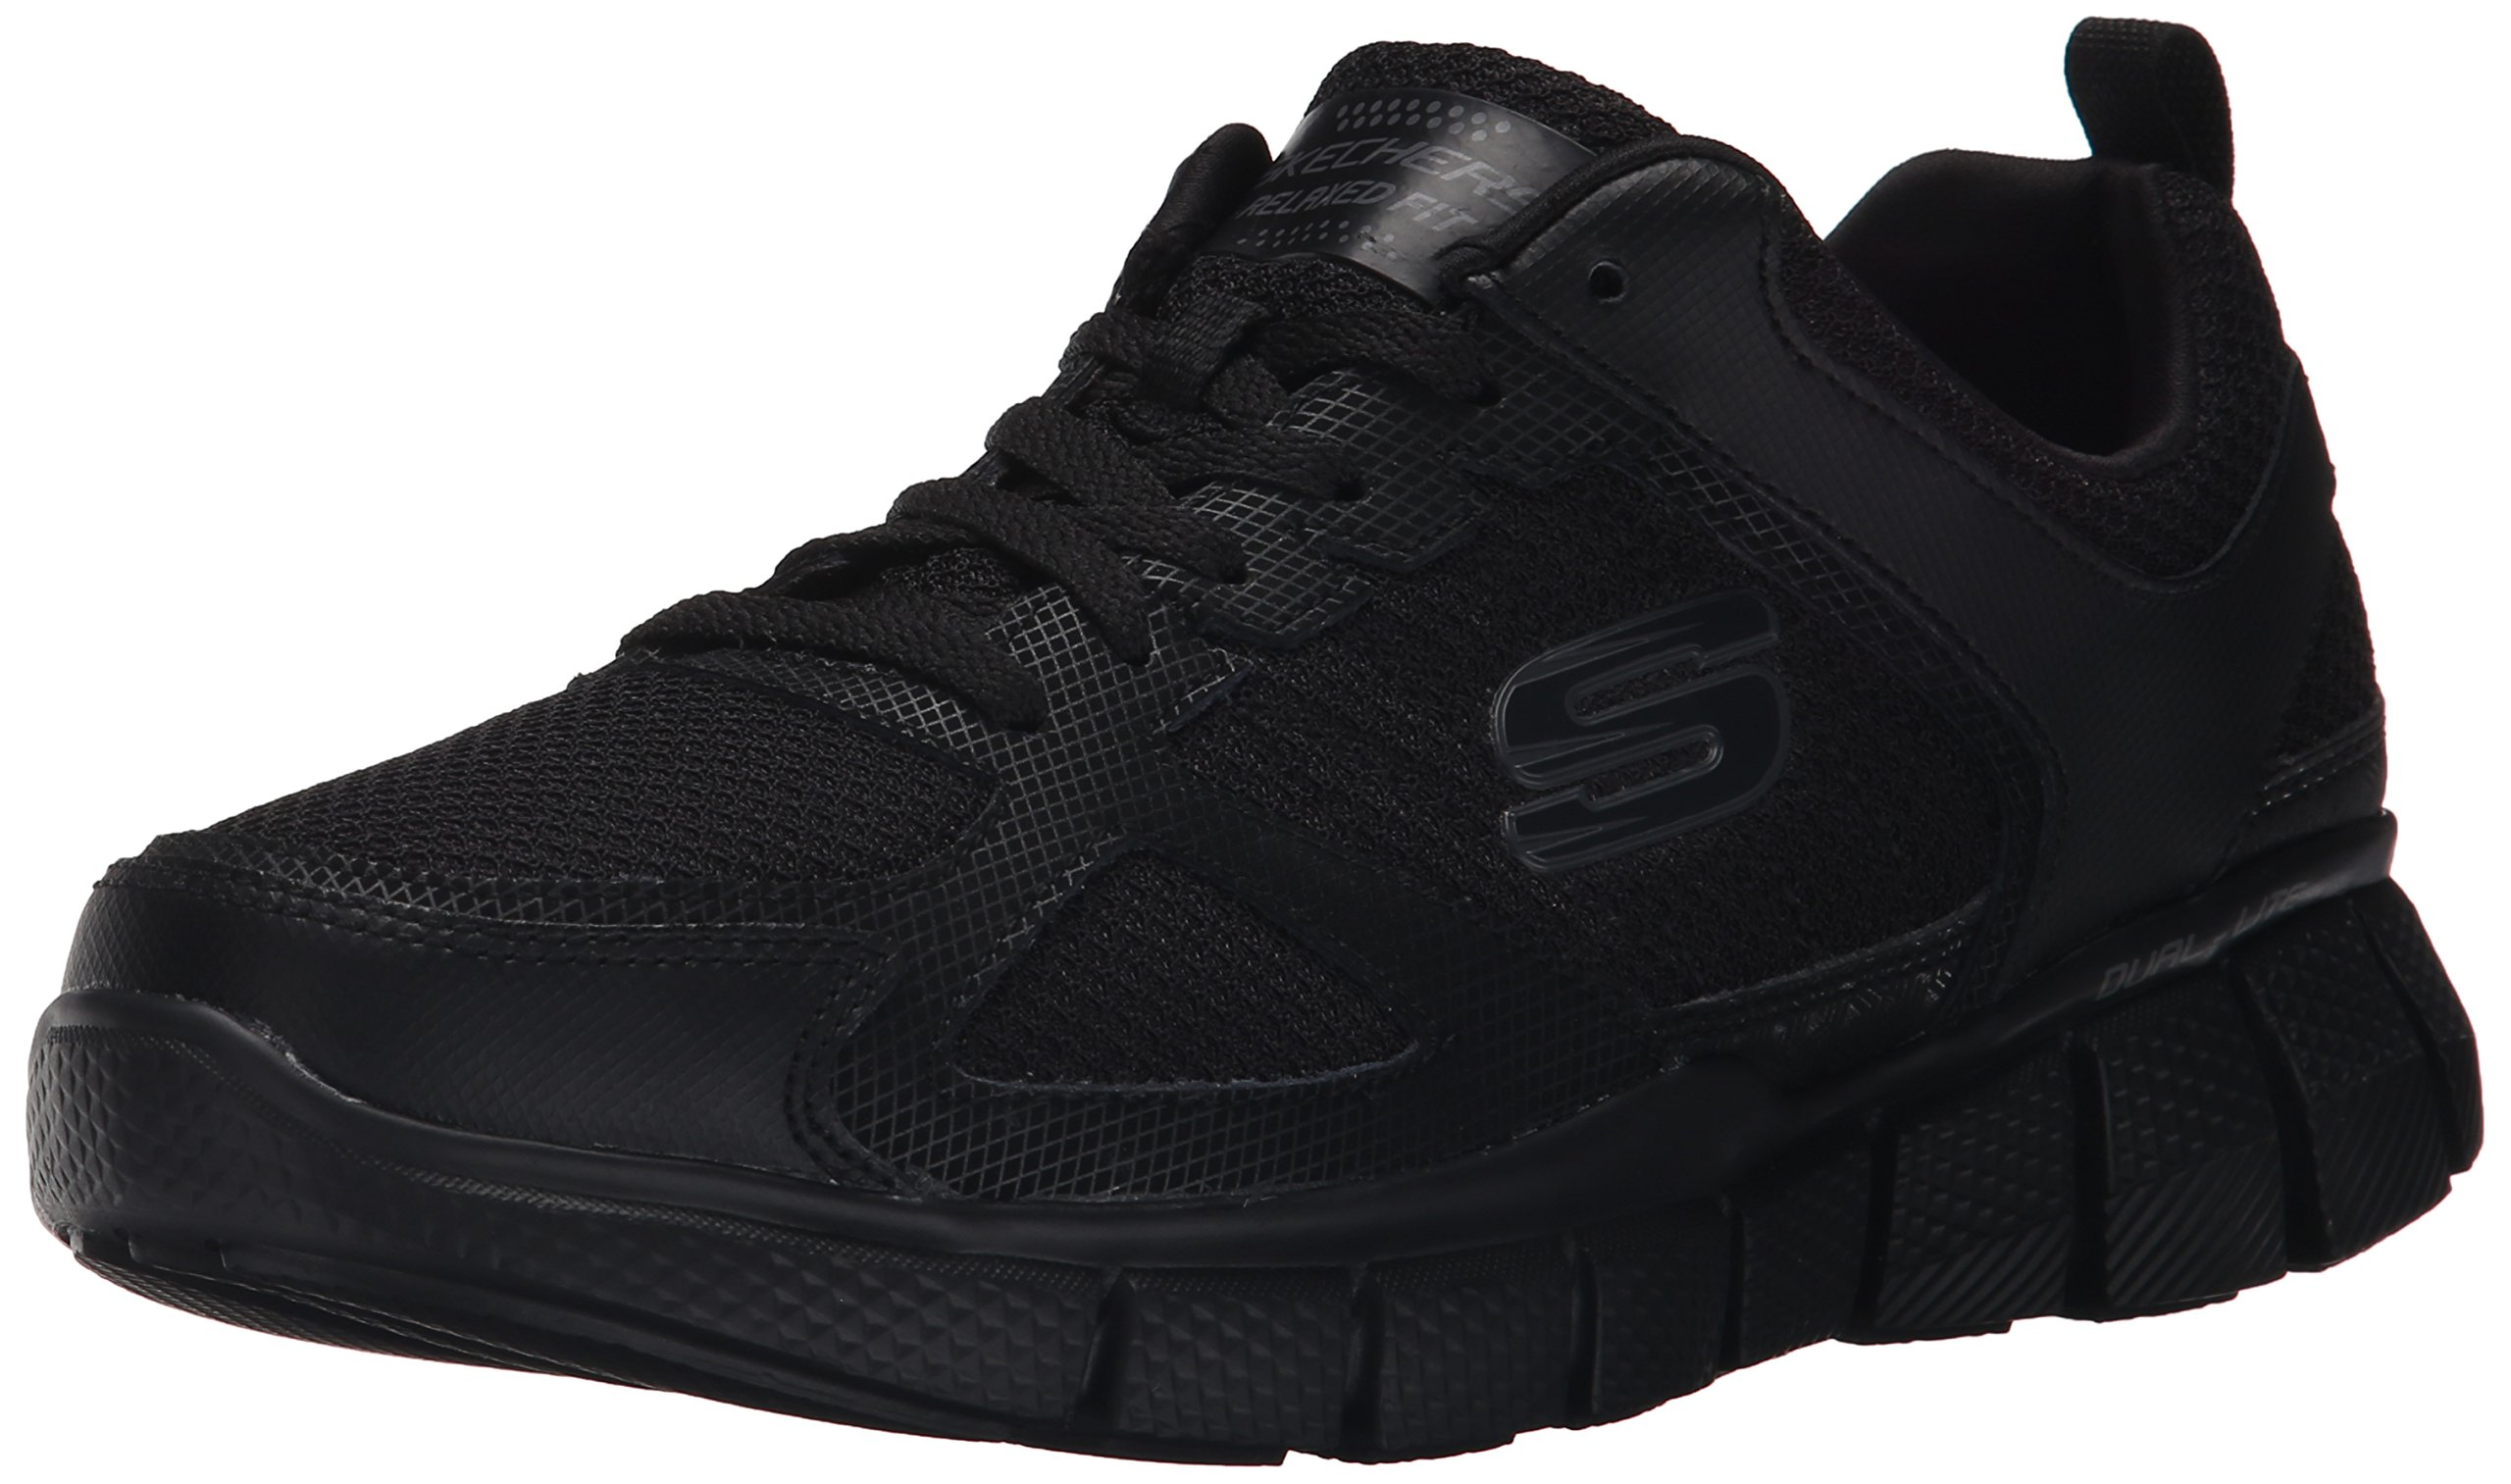 Skechers Sport Men's Equalizer 2.0 True Balance Sneaker,All Black,7.5 M US